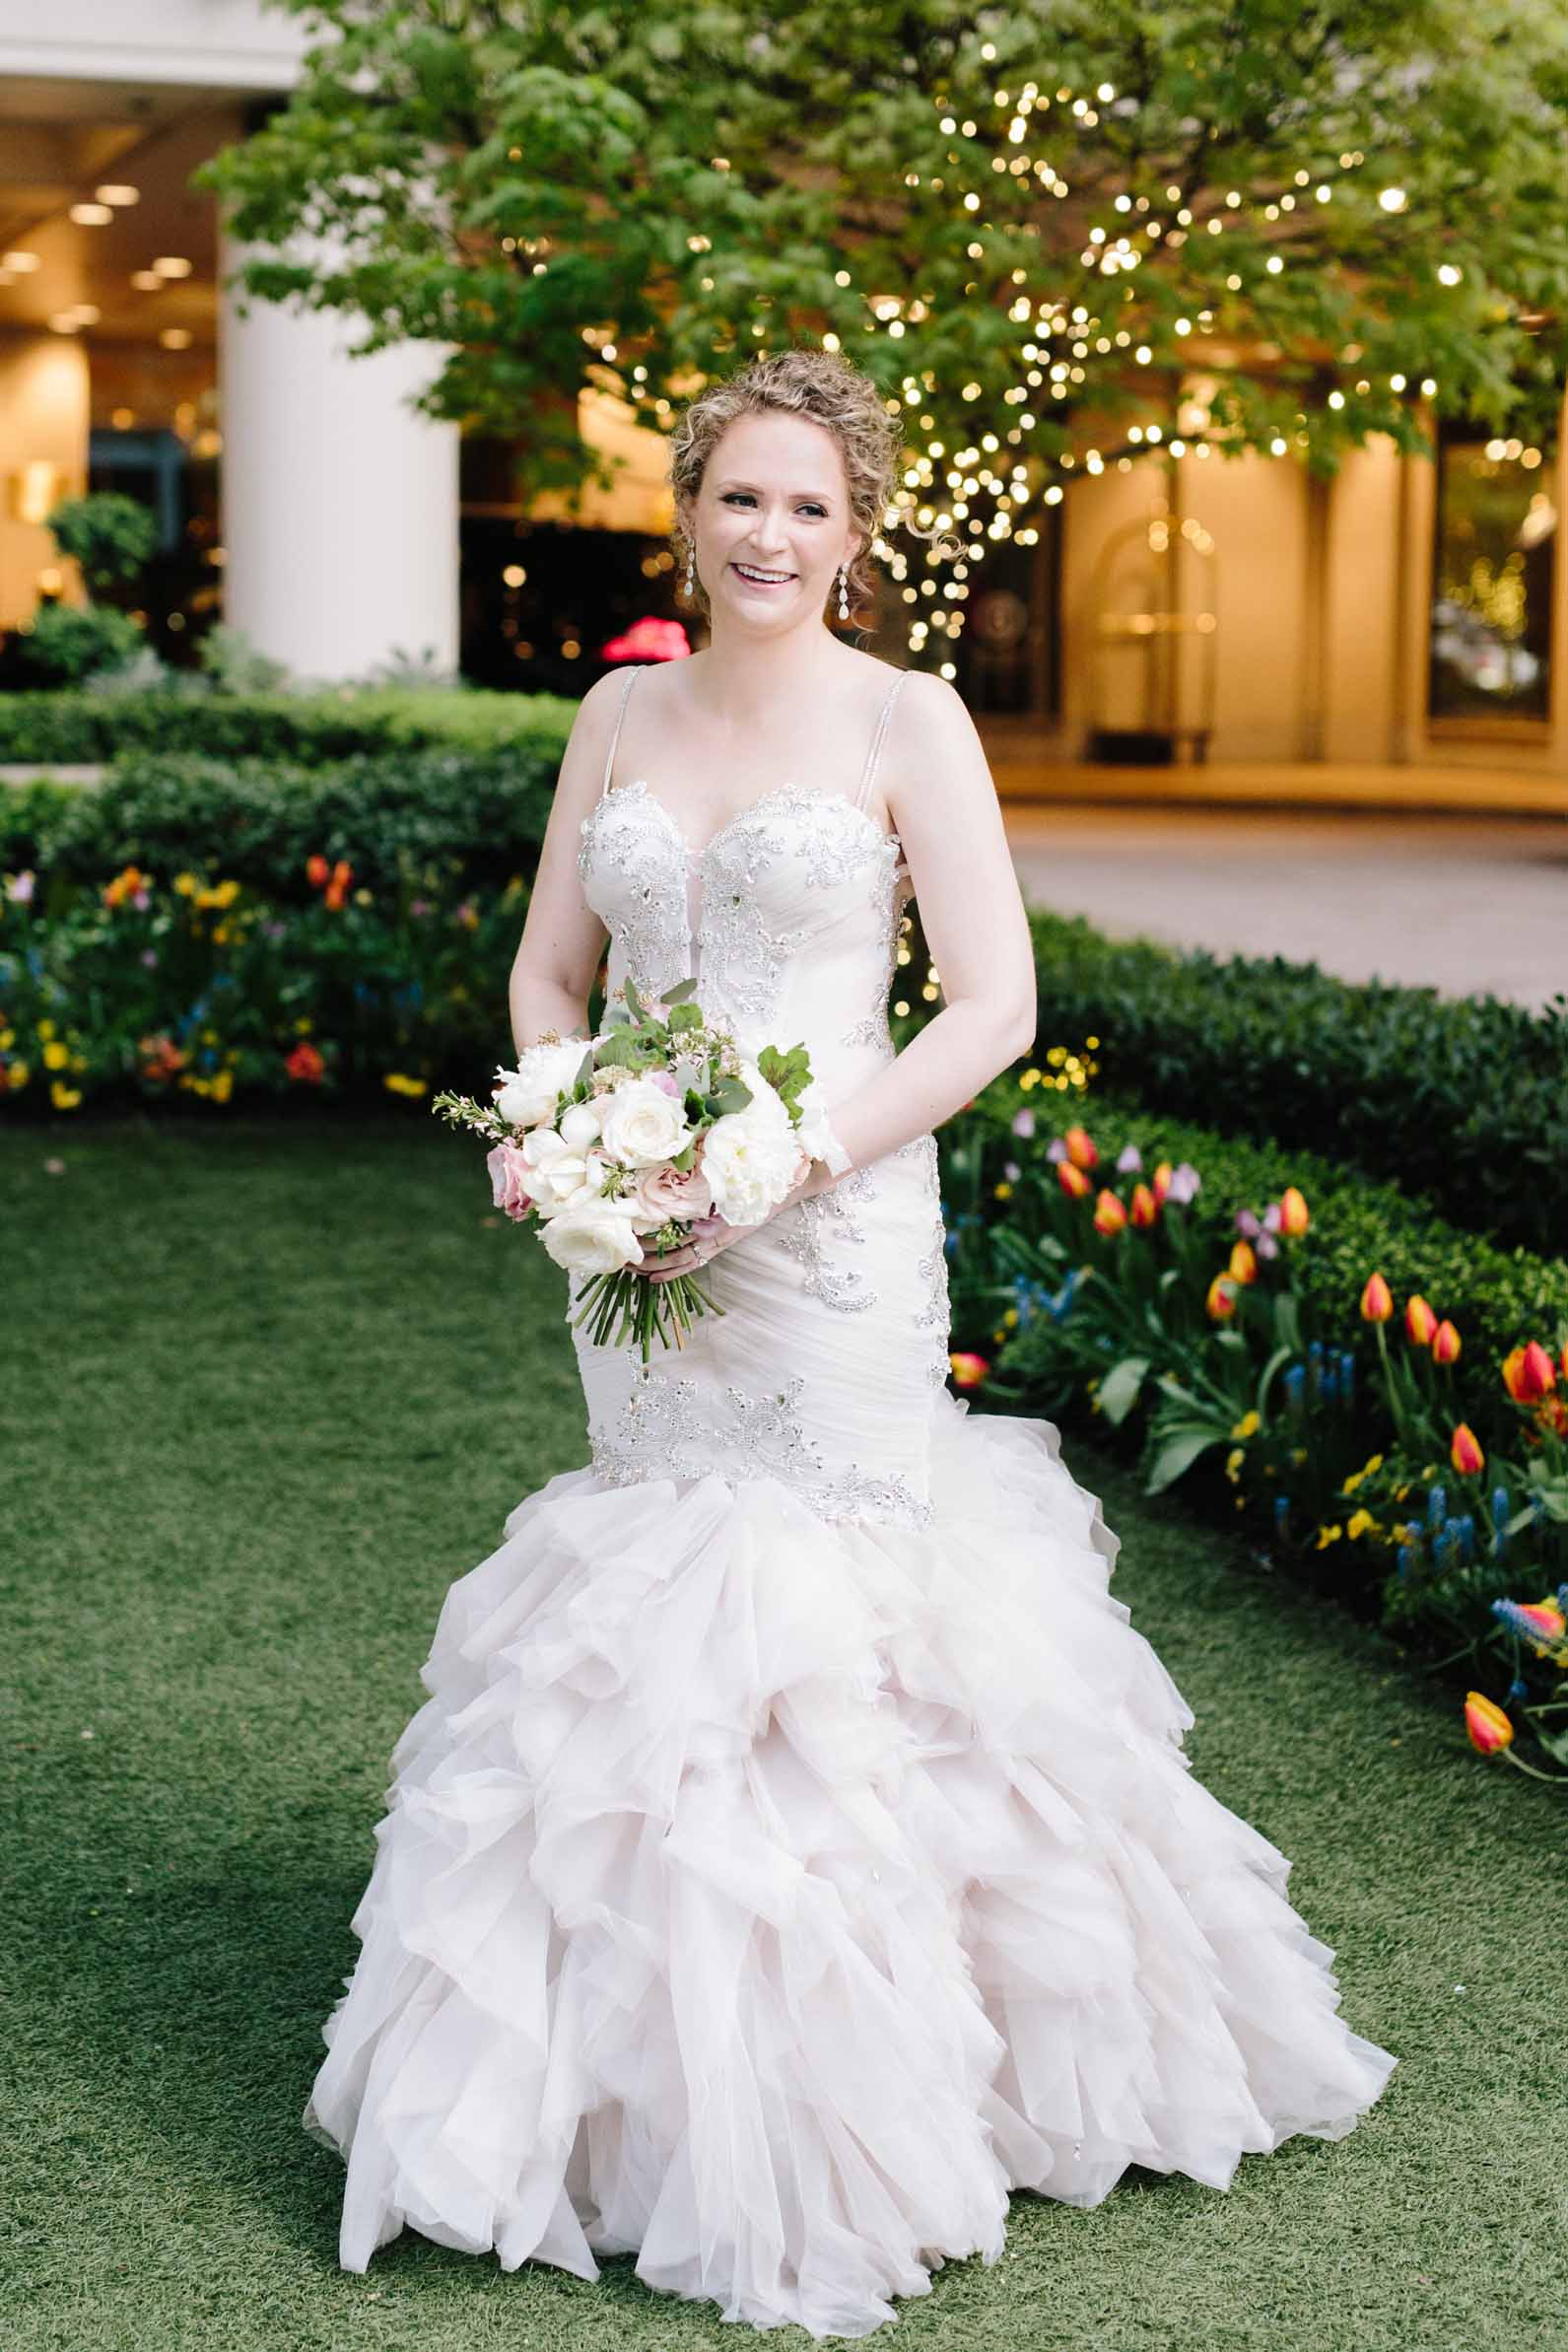 Bride dressed in white dress, holding spring garden bouquet on lawn outside hotel